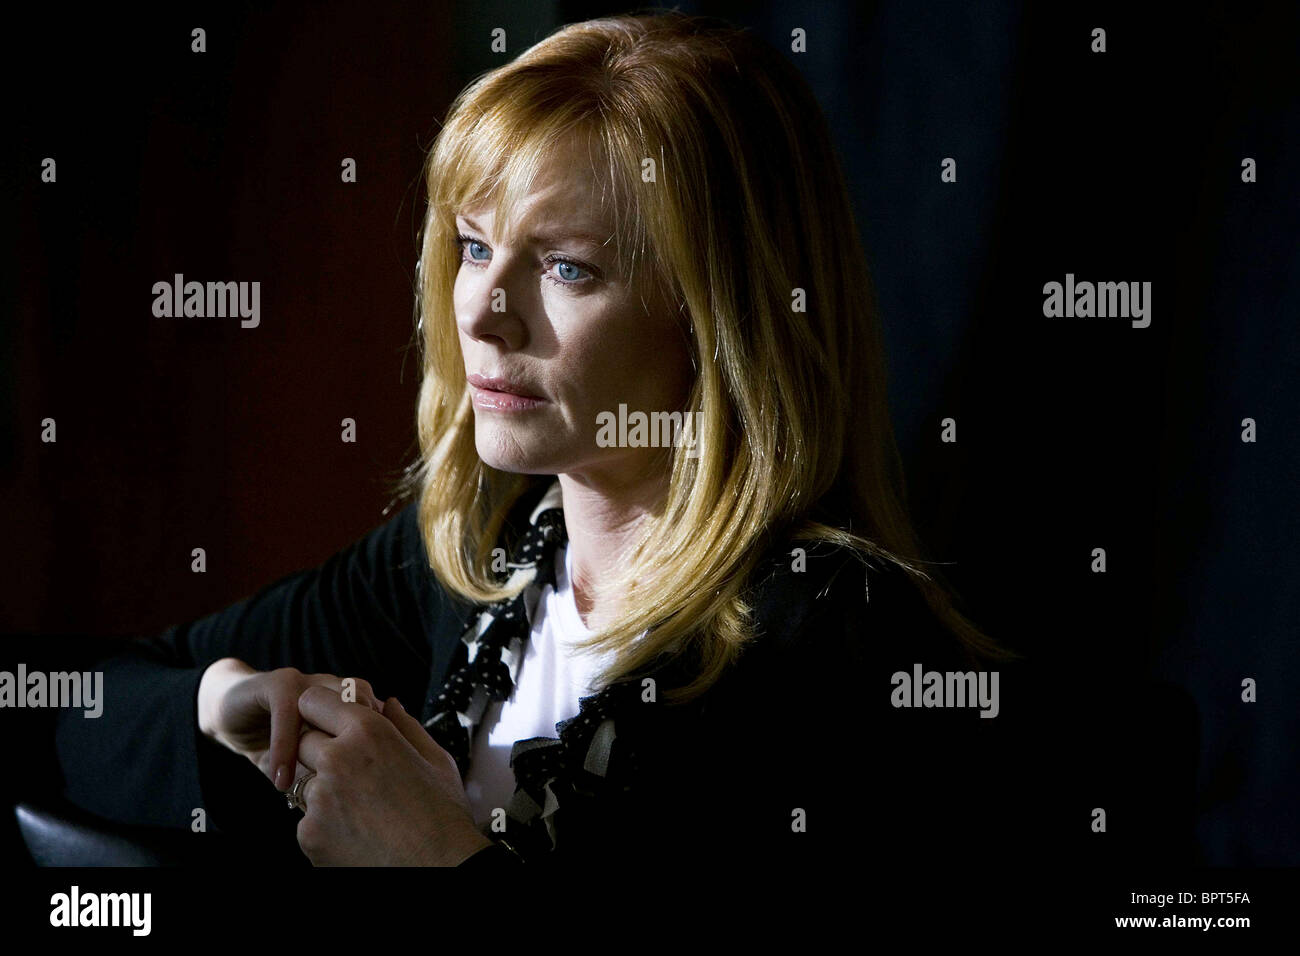 MARG HELGENBERGER MR. BROOKS (2007) Stock Photo